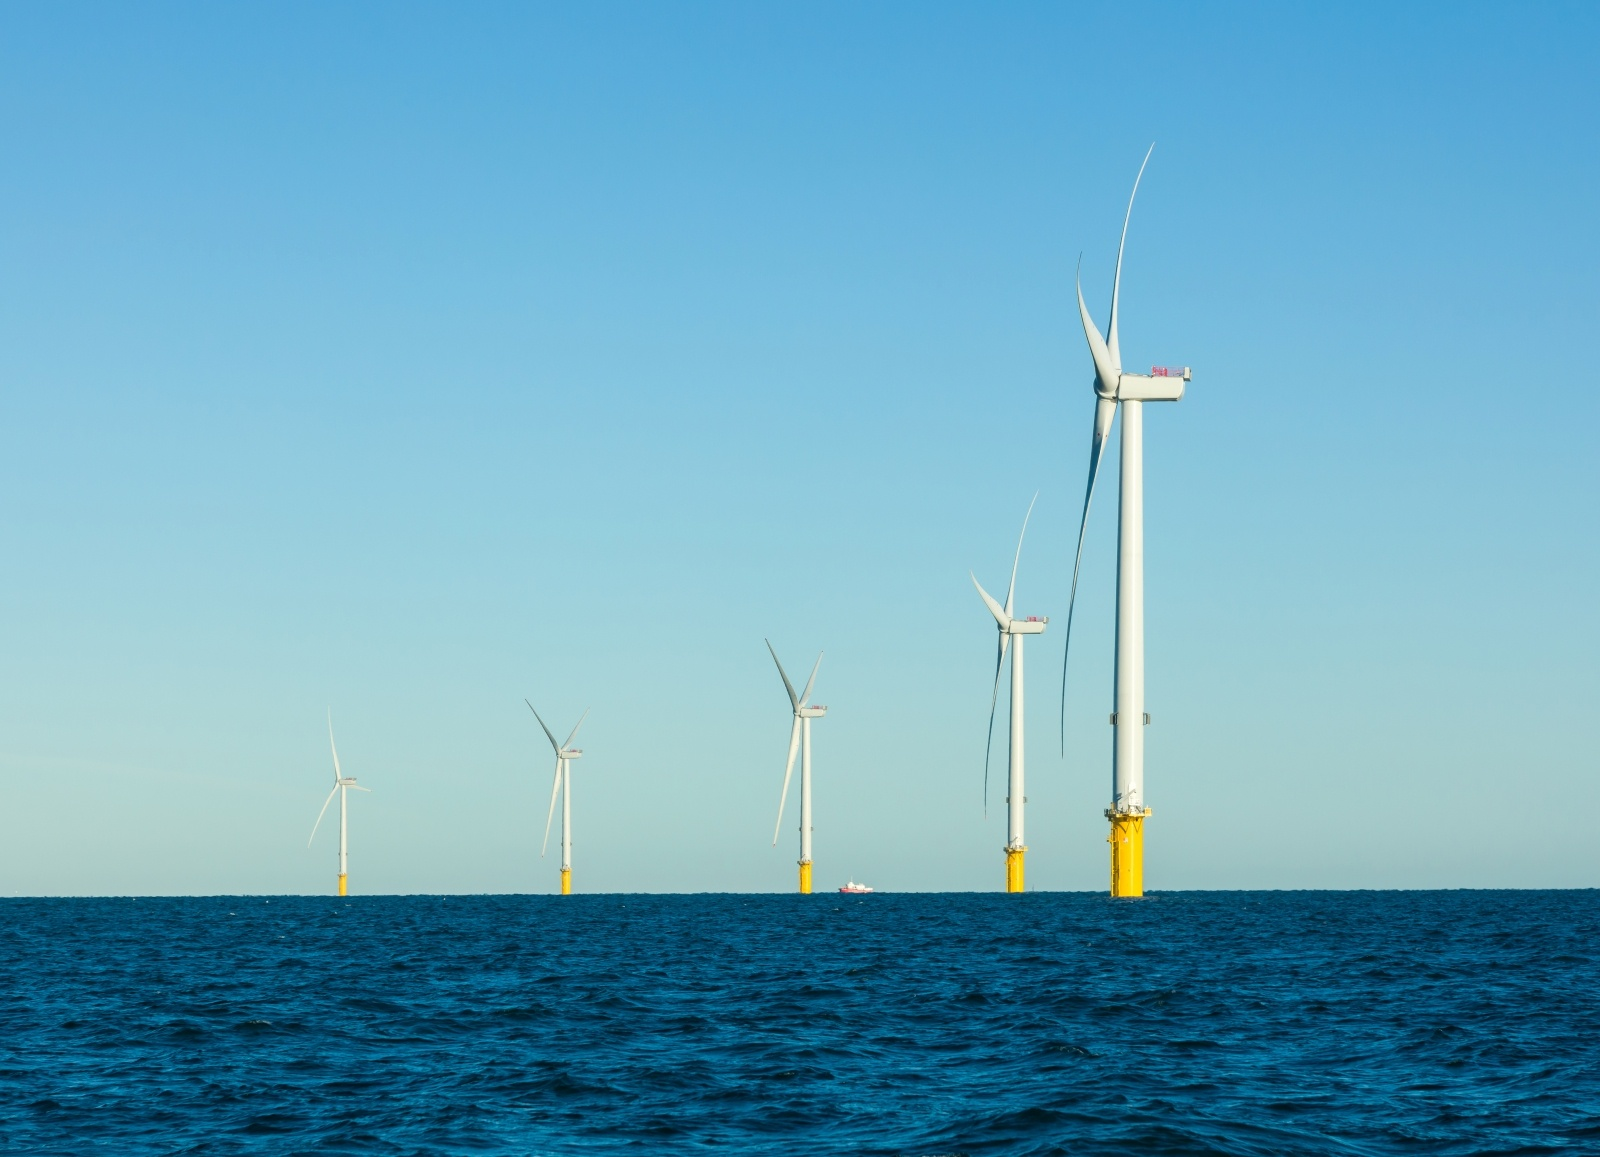 Blyth Offshore wind farm project